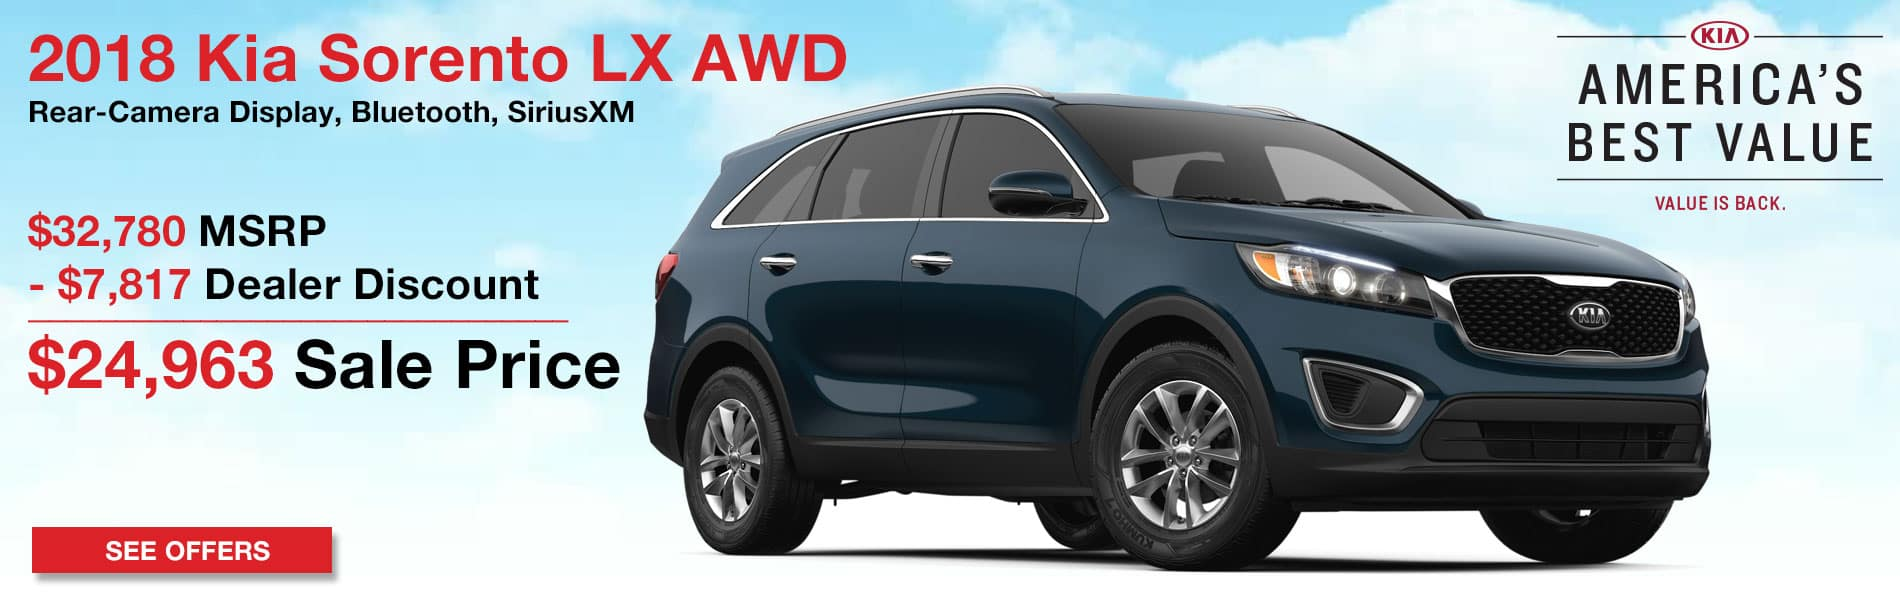 Up to $7,817 in dealer discount on the New 2018 Kia Sorento LX AWD